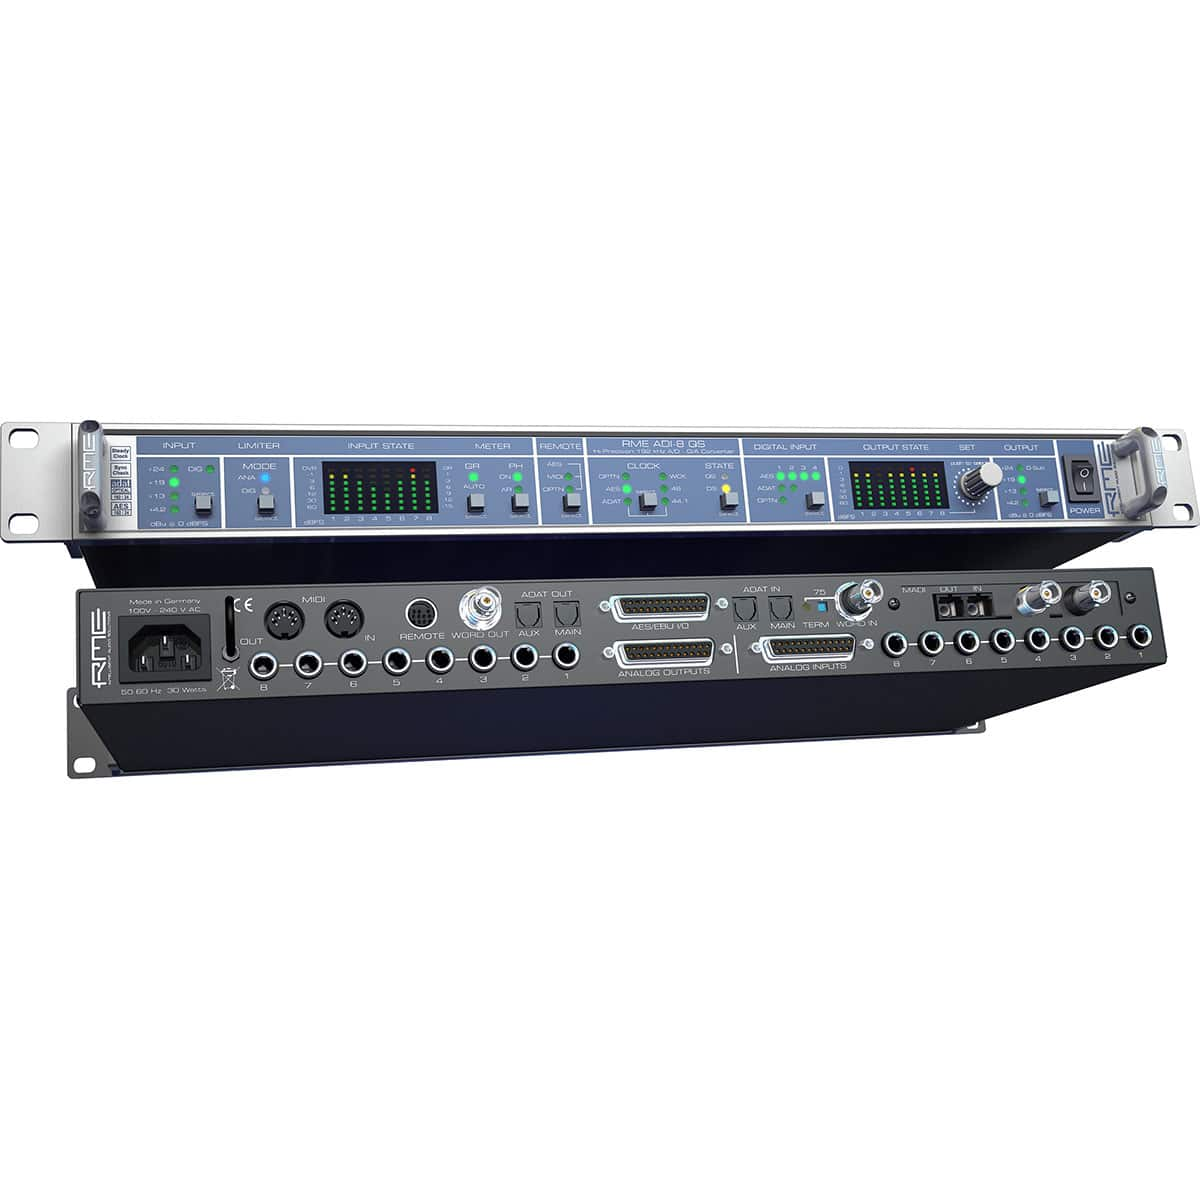 RME ADI 8 QS 05 Convertitori Audio, Pro Audio, Audio Digitale Convertitori e Schede Audio